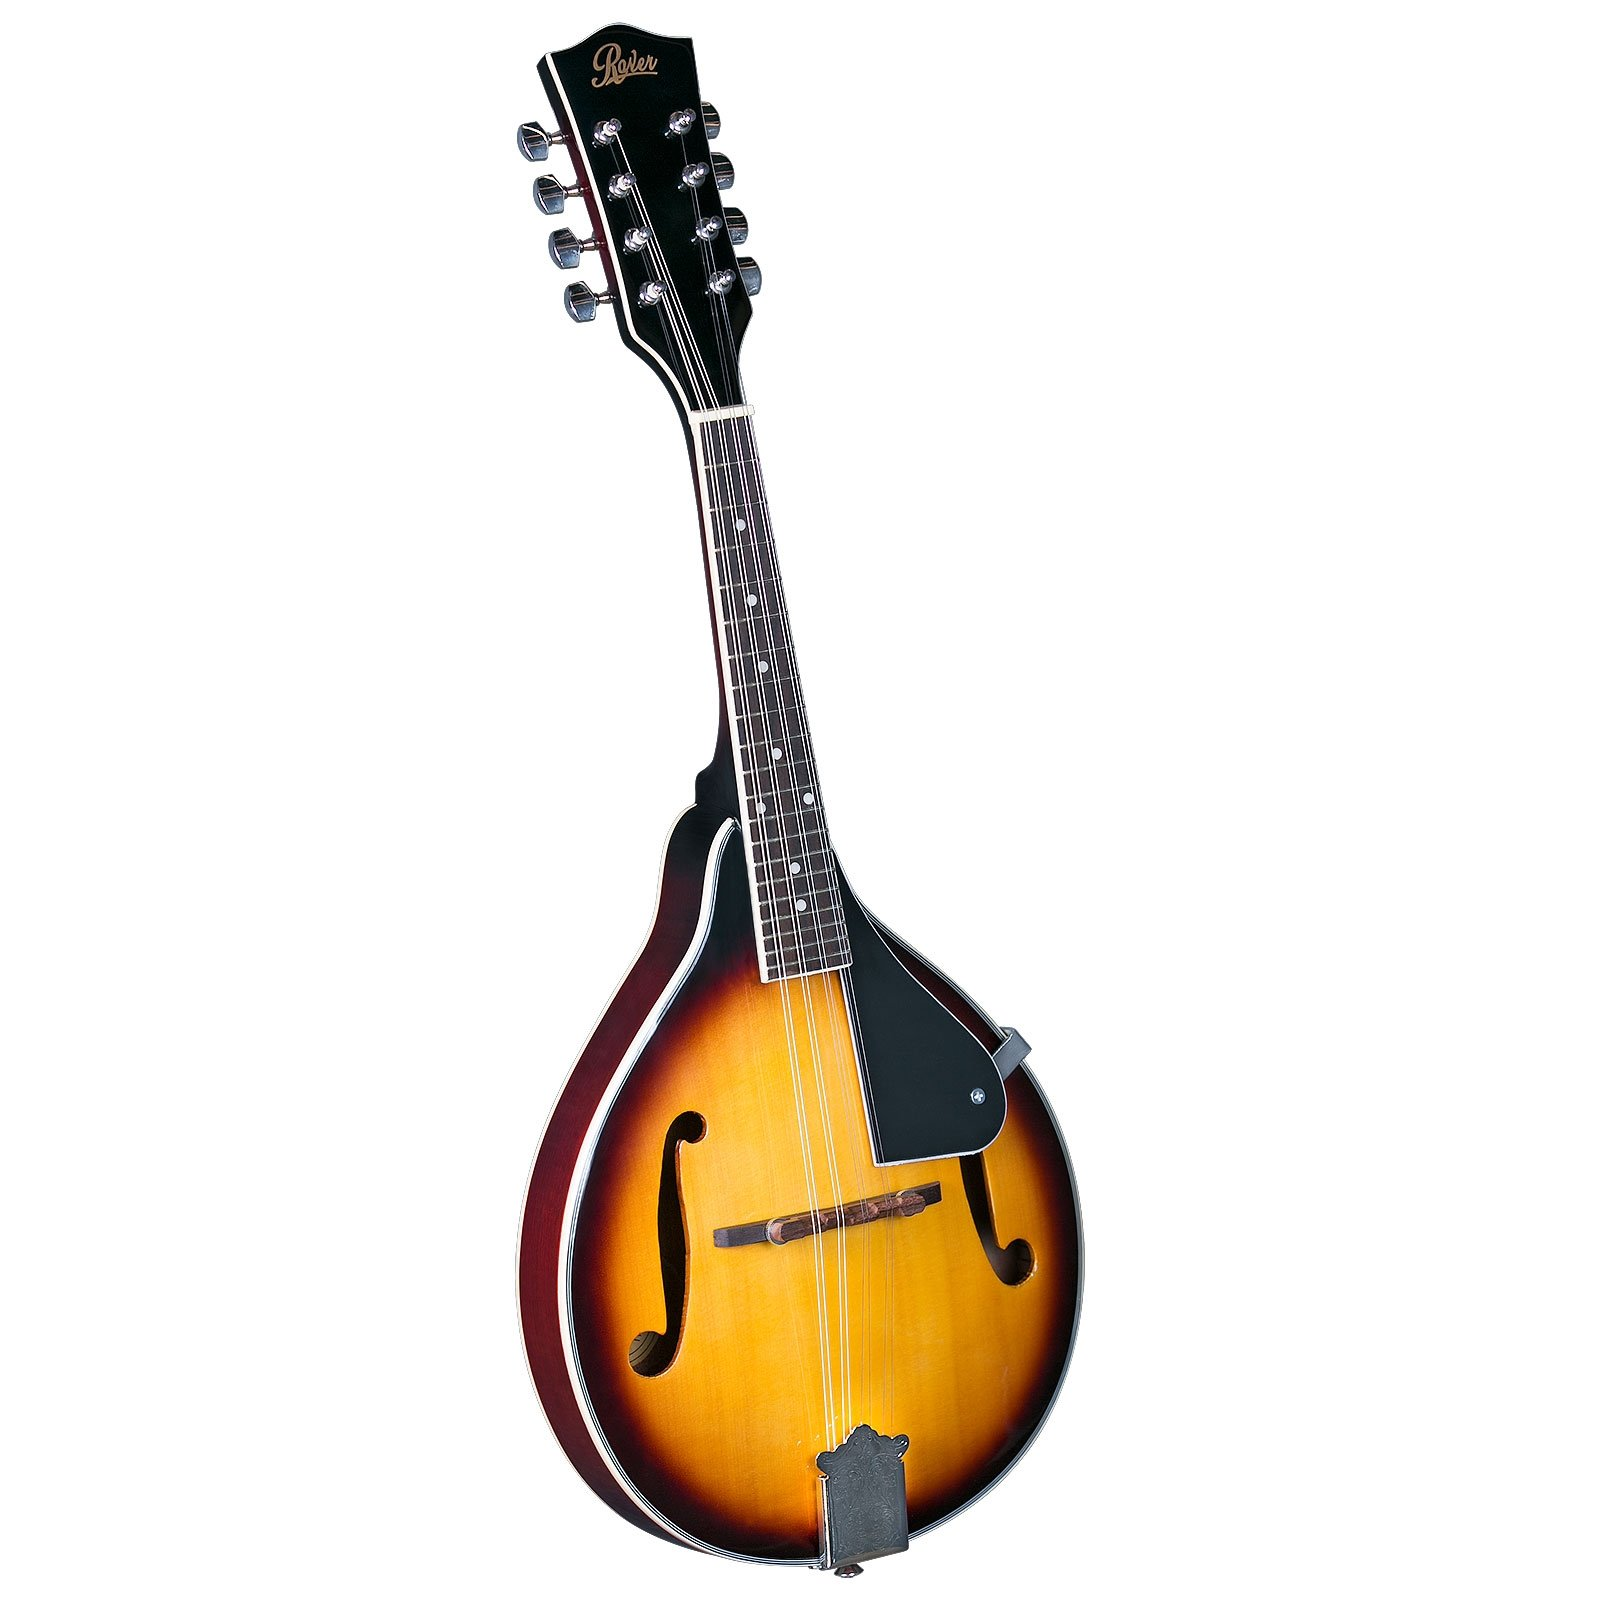 Rover RM-25S Student A-Model Mandolin - Sunburst by Rover (Image #1)